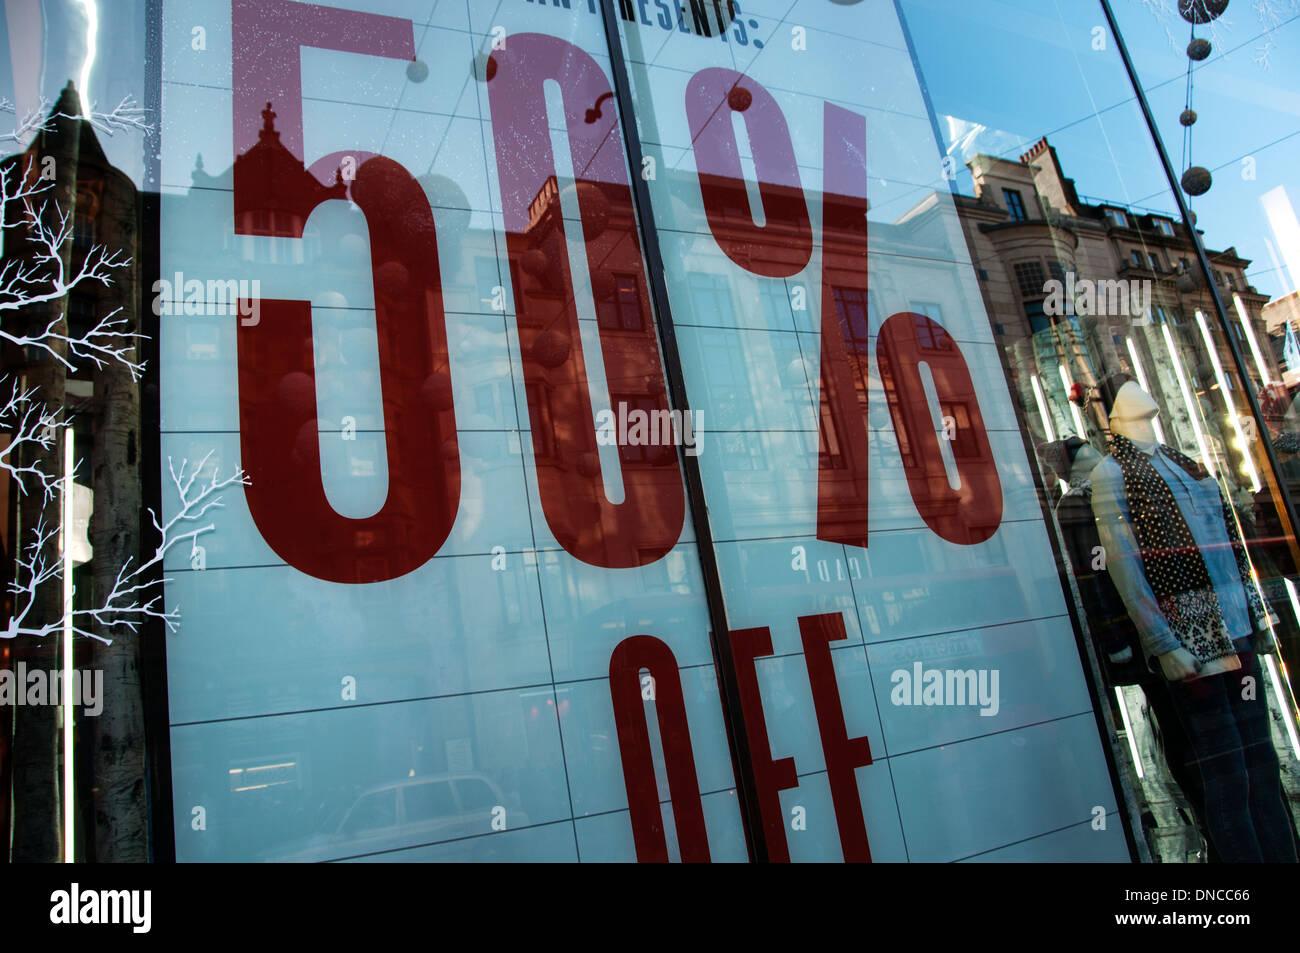 97e0d8c900205 London. Christmas 2013. Shopping. Sales . Sign in shop window saying  50